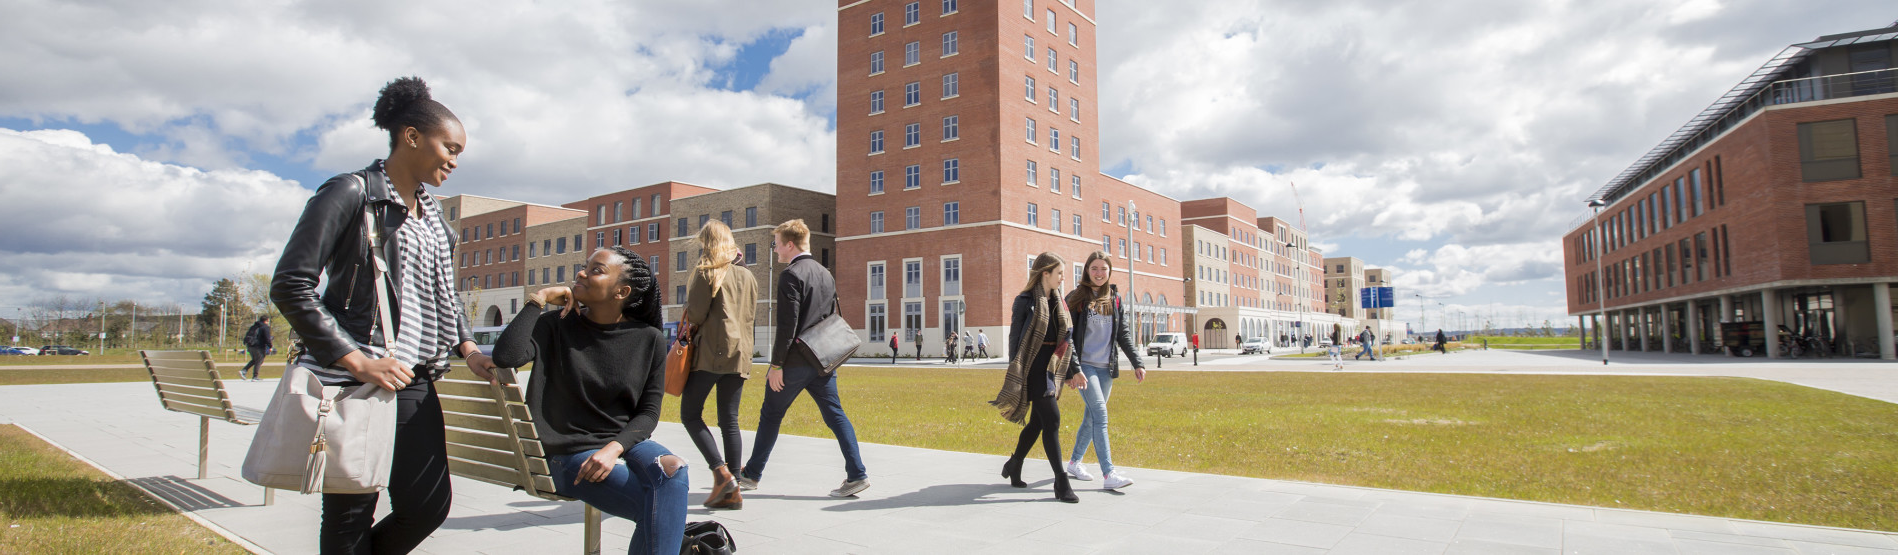 Students walking through Bay campus